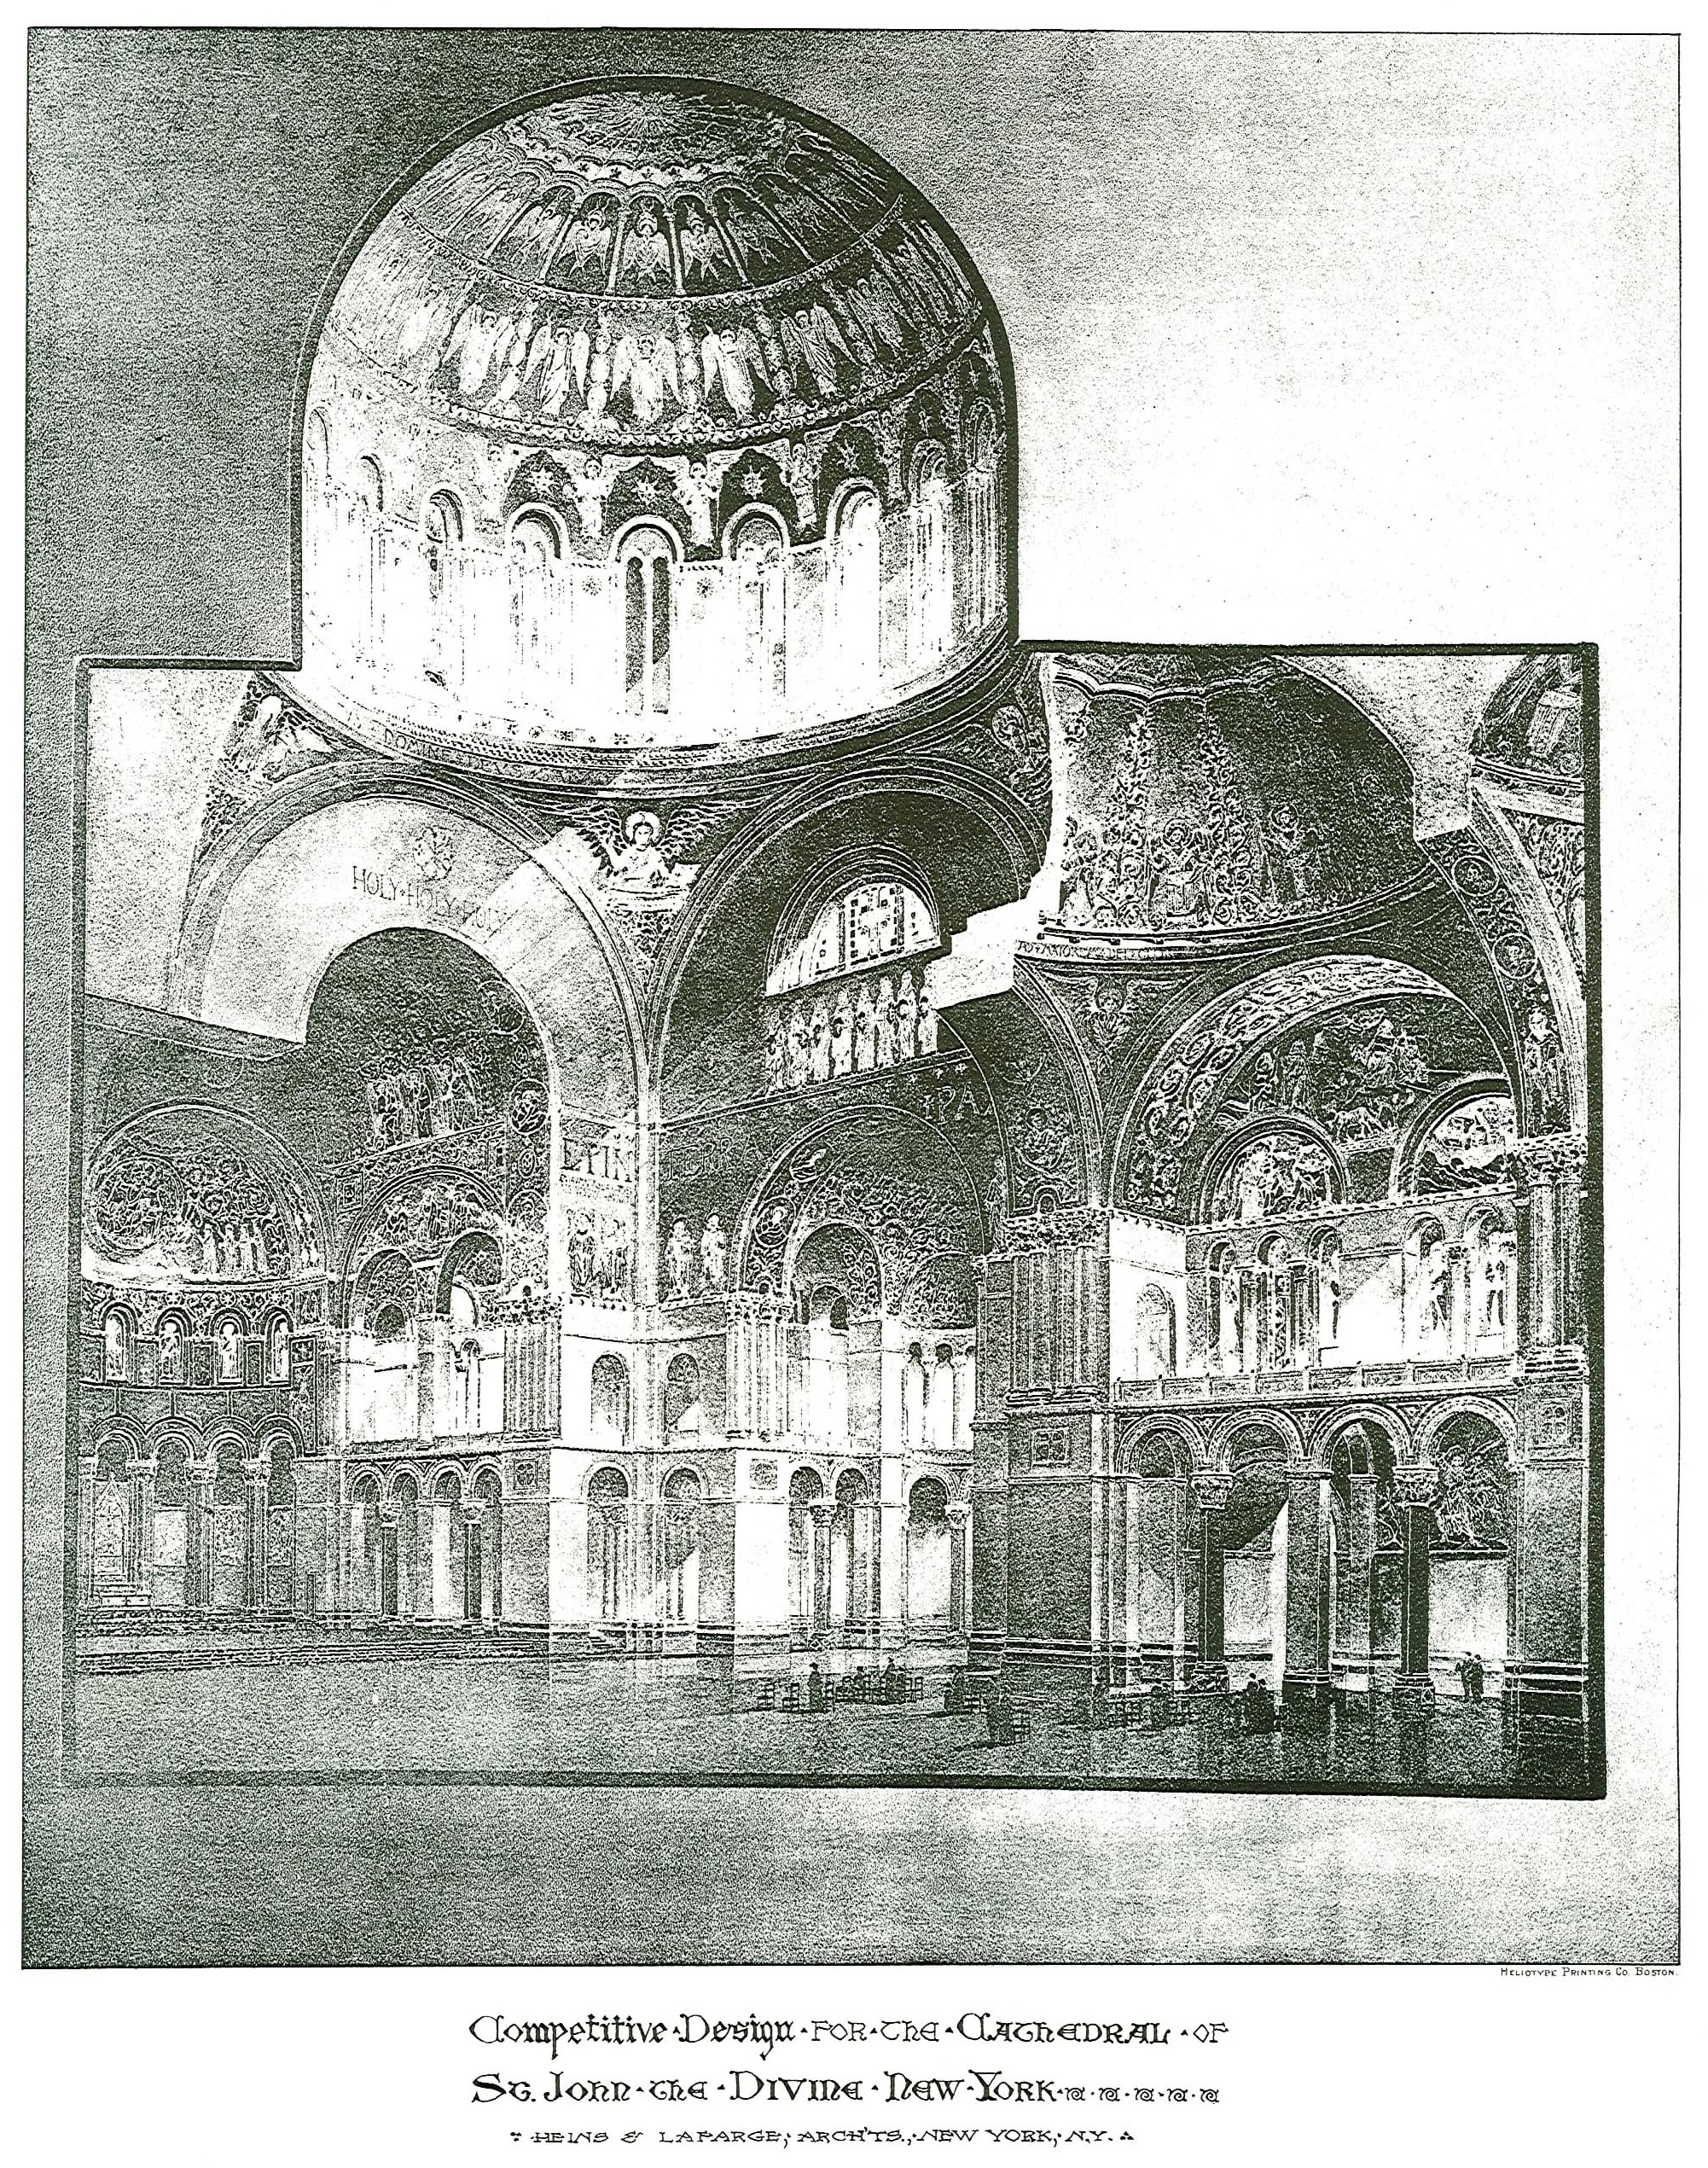 1892: This rendering from Heins & LaFarge's competition entry shows the crossing of St. John the Divine. The dome was to be just 10 feet shy in diameter of Hagia Sophia's.